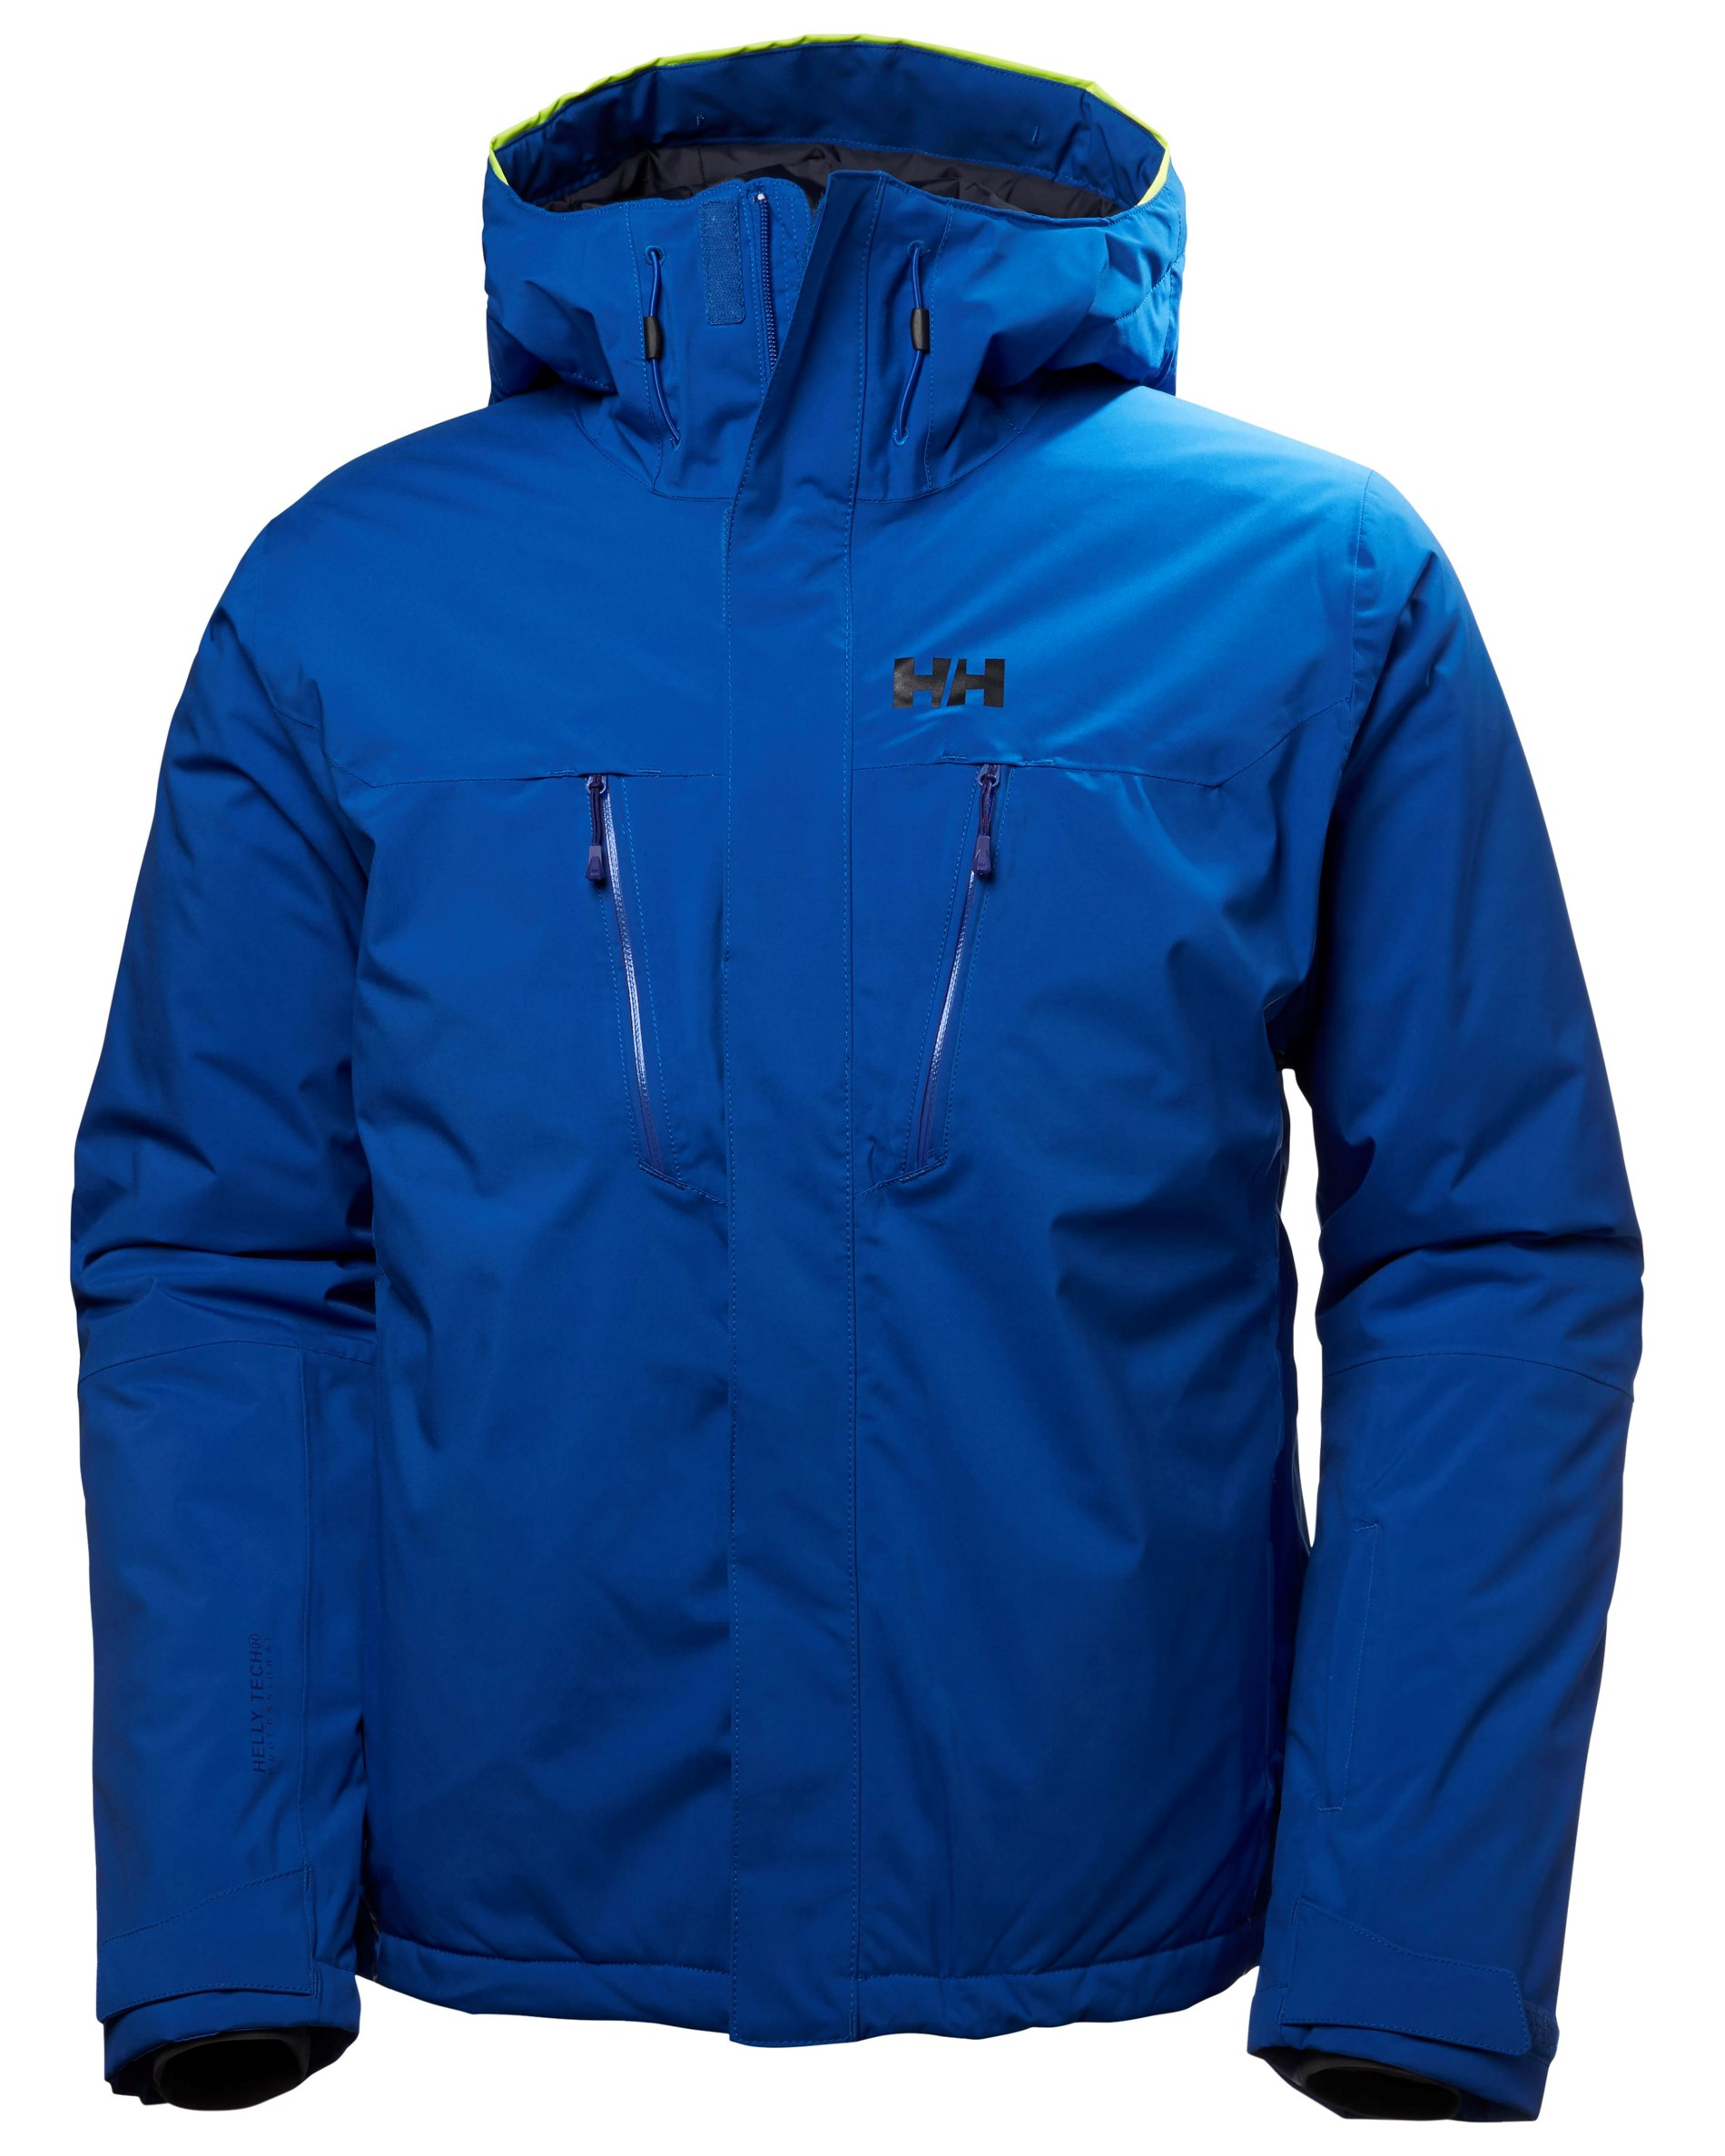 820976f1 Charger Jacket M Olympian Blue